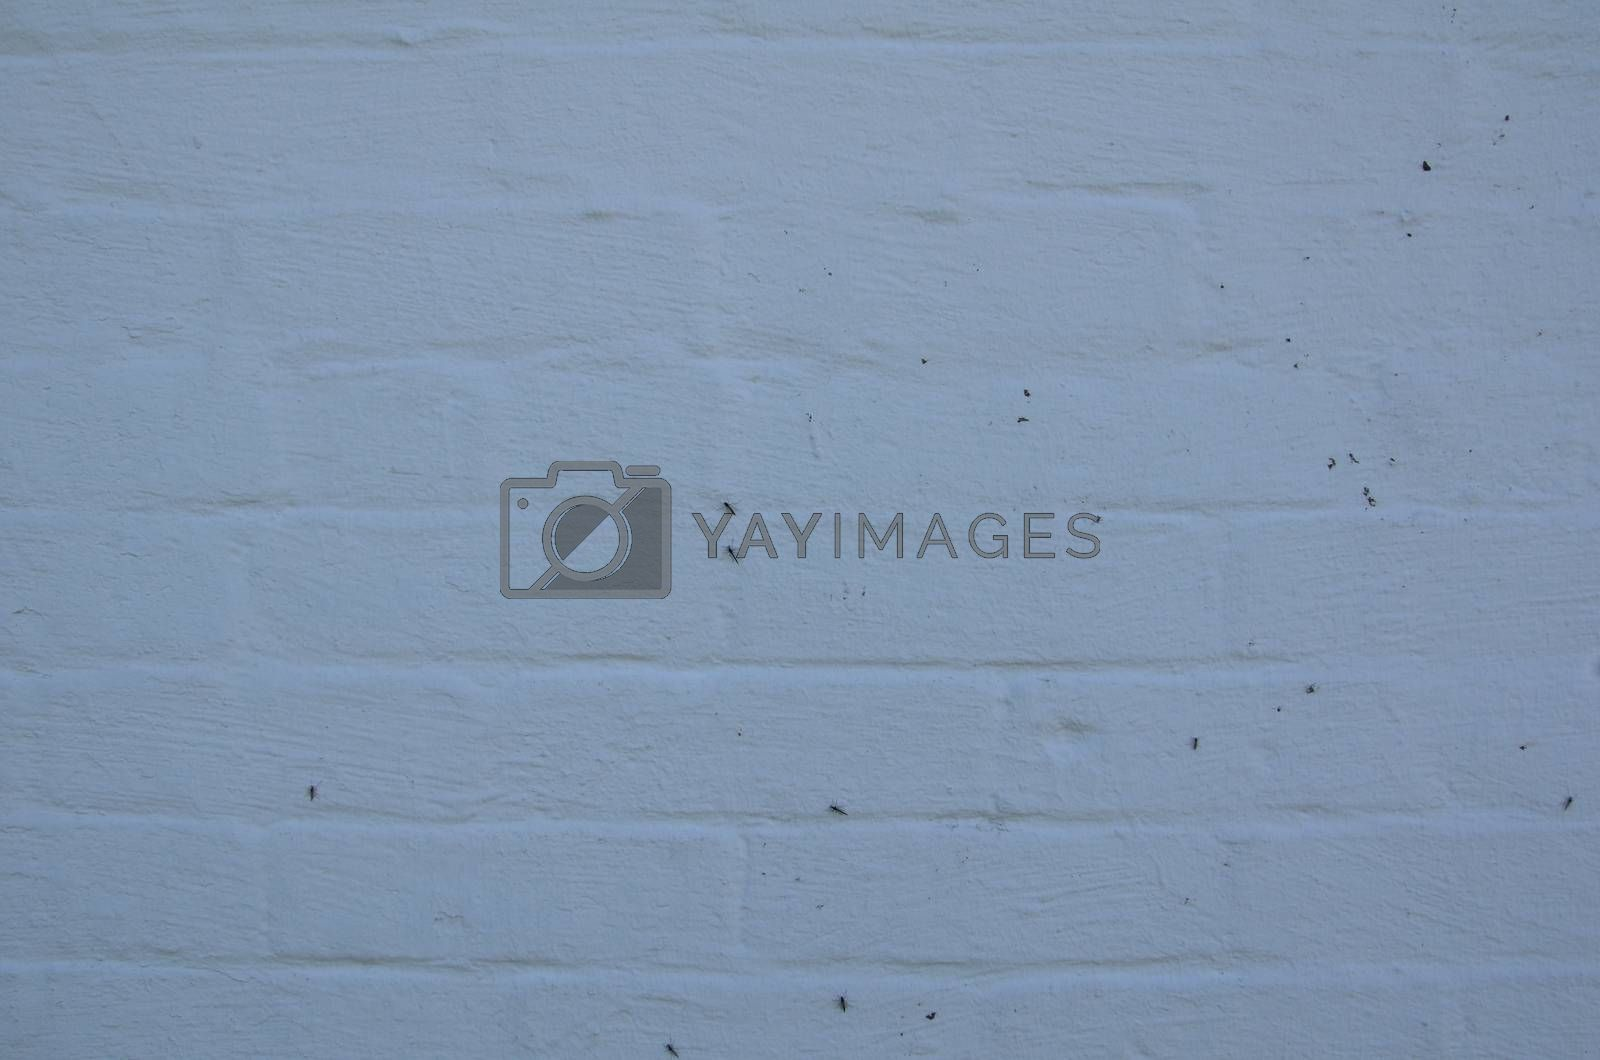 Royalty free image of white wall or surface with mosquito insects by stockphotofan1